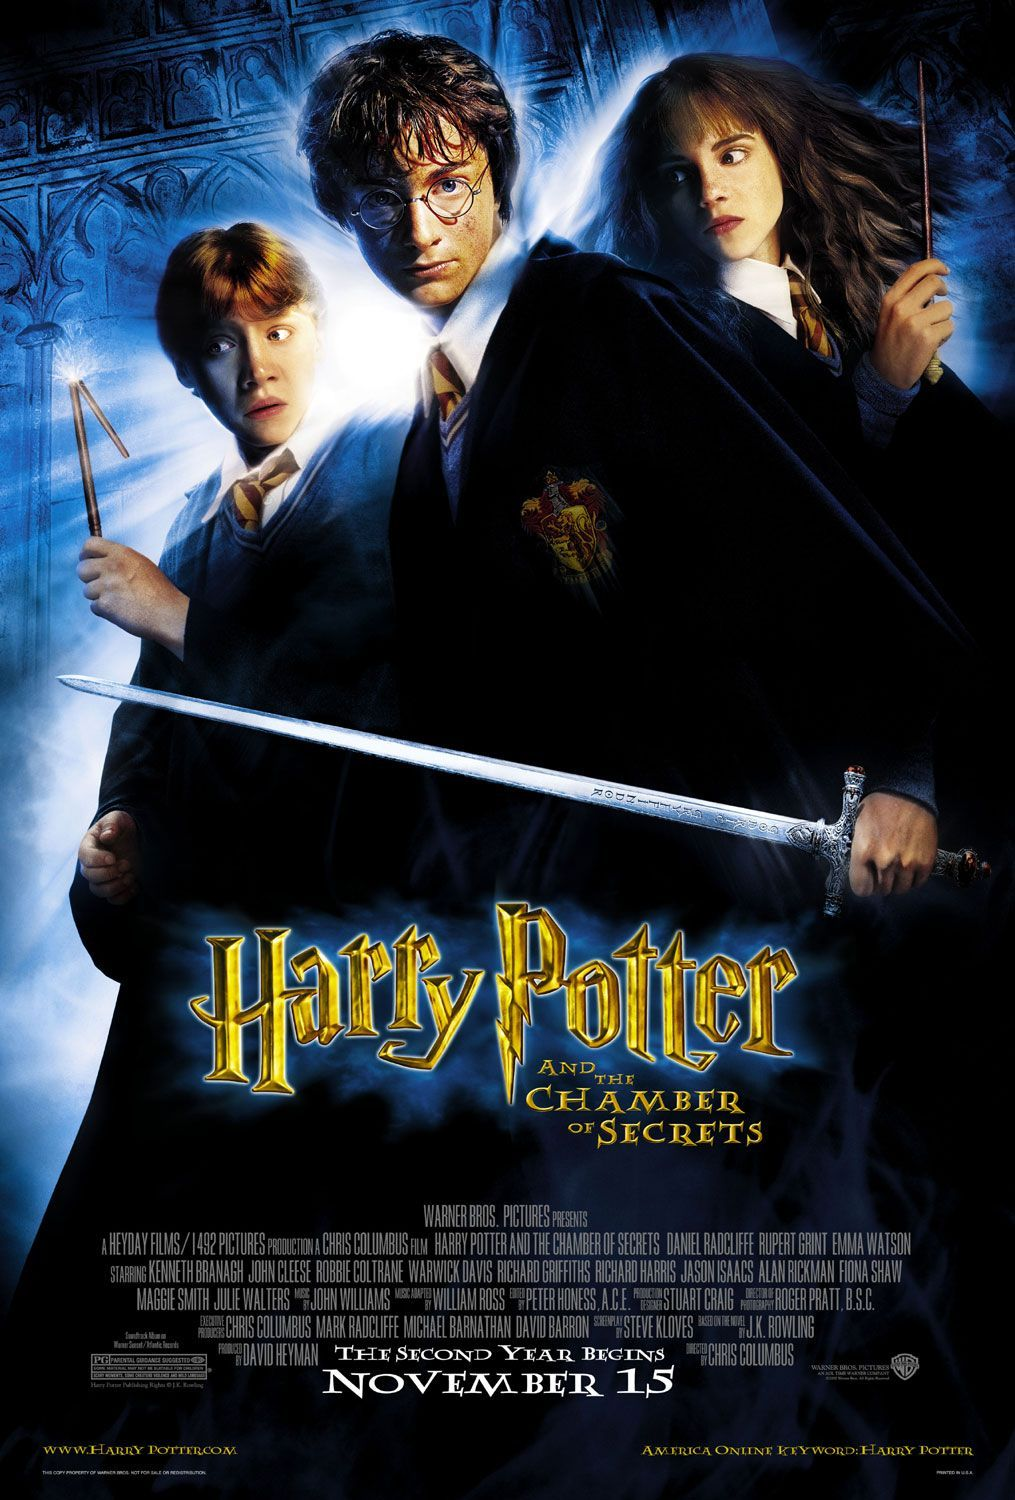 a review of harry potter and the chamber of secrets Find album reviews, stream songs, credits and award information for harry potter and the chamber of secrets [original soundtrack] - john williams on allmusic - 2002 - the soundtrack to warner brothers pictures' harry&hellip.